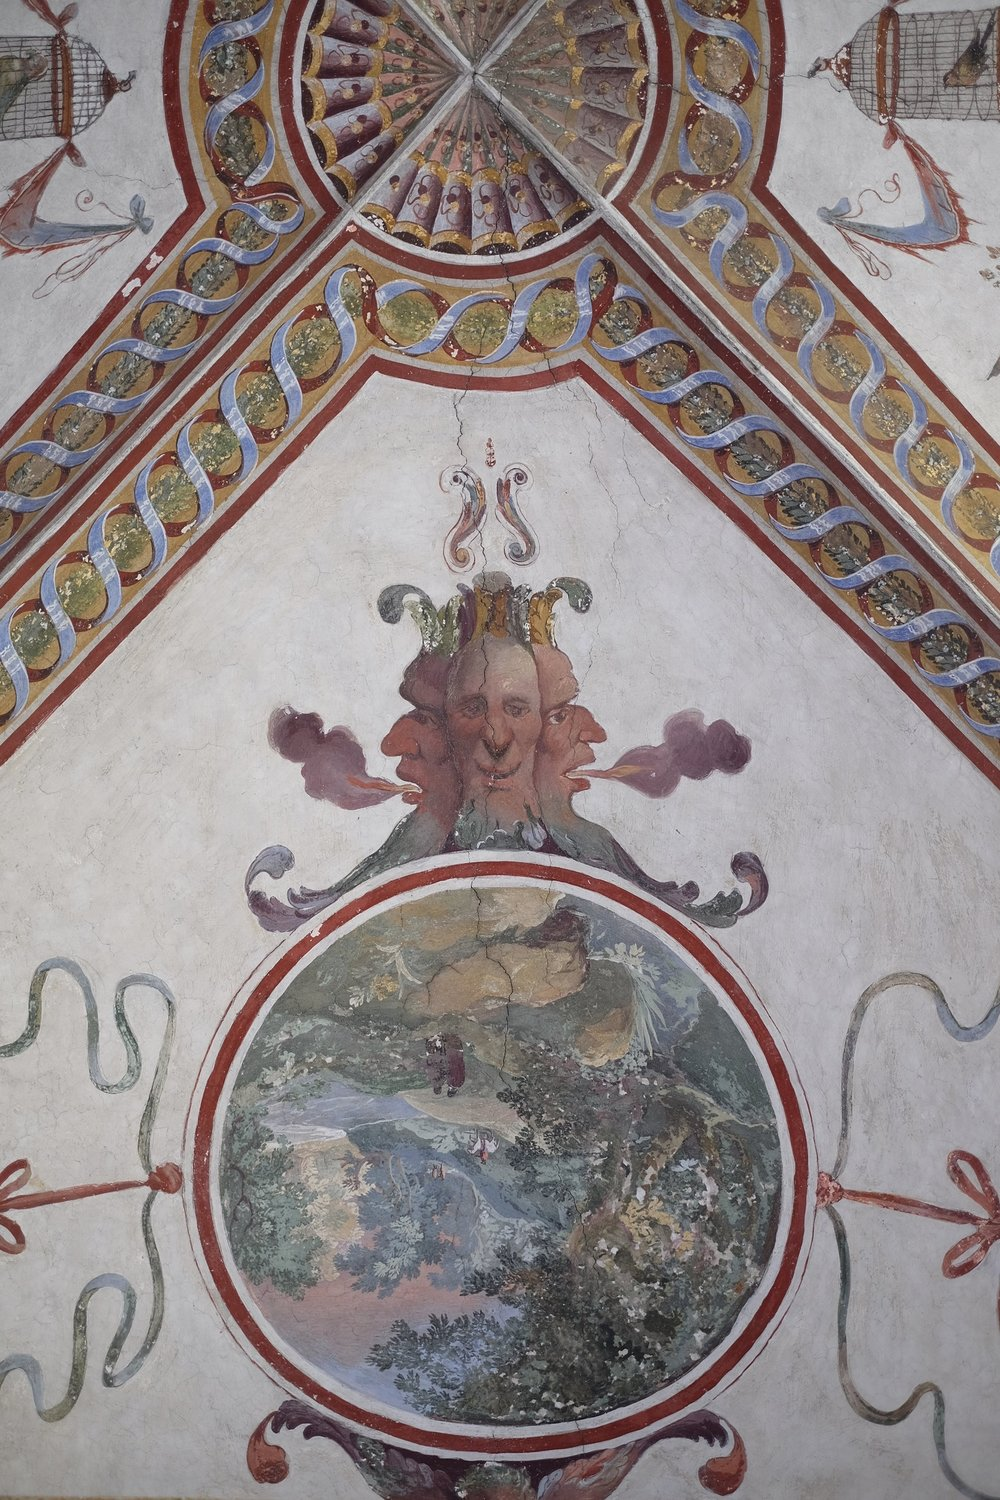 Fresco detail, with nature and masonic symbols.